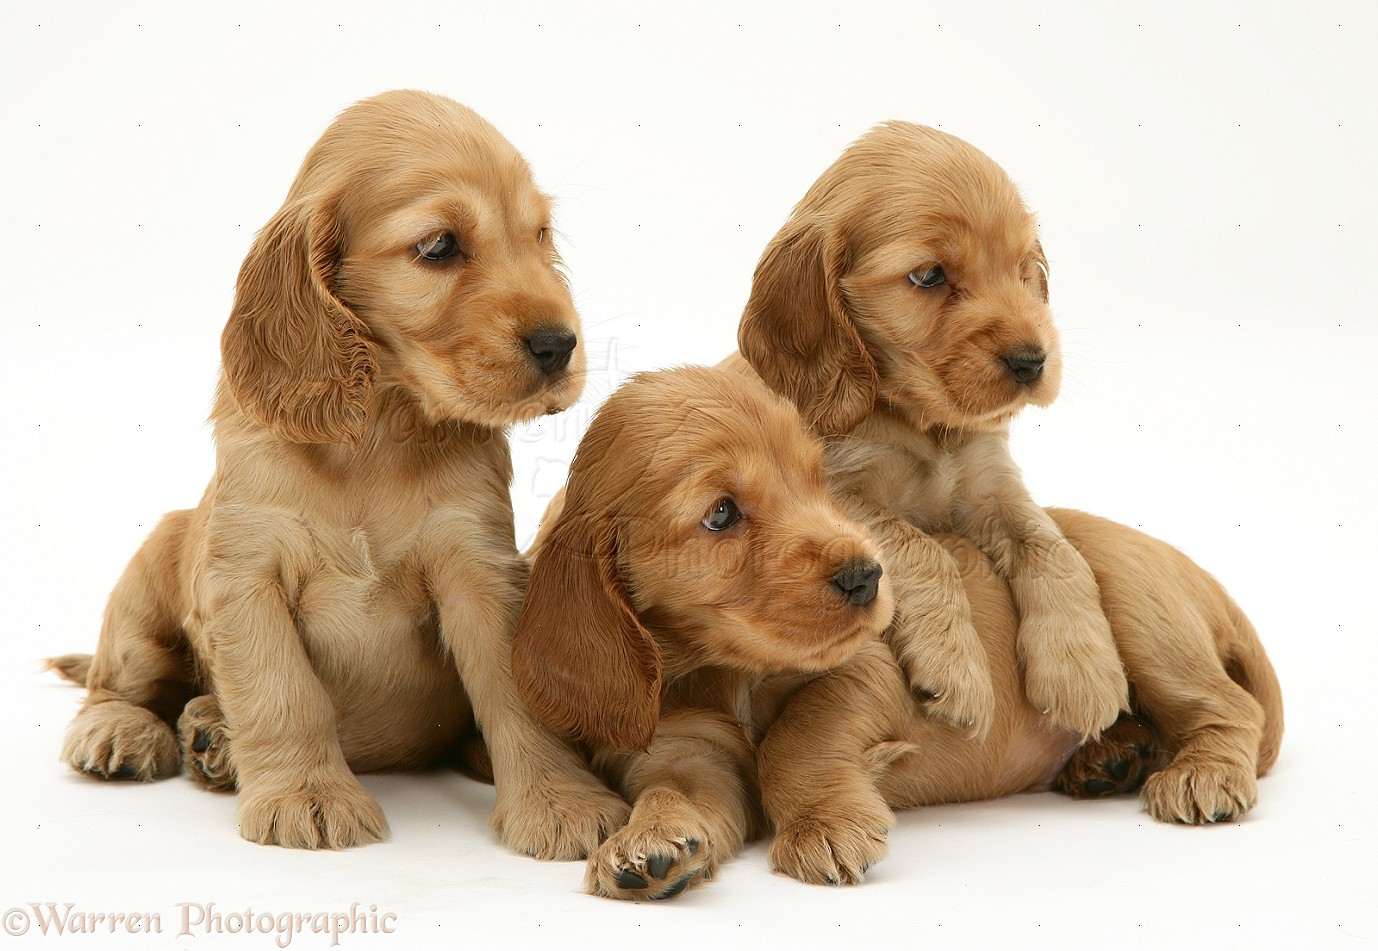 Dogs  Three Golden Cocker Spaniel pups photo - WP34685Golden Cocker Puppies